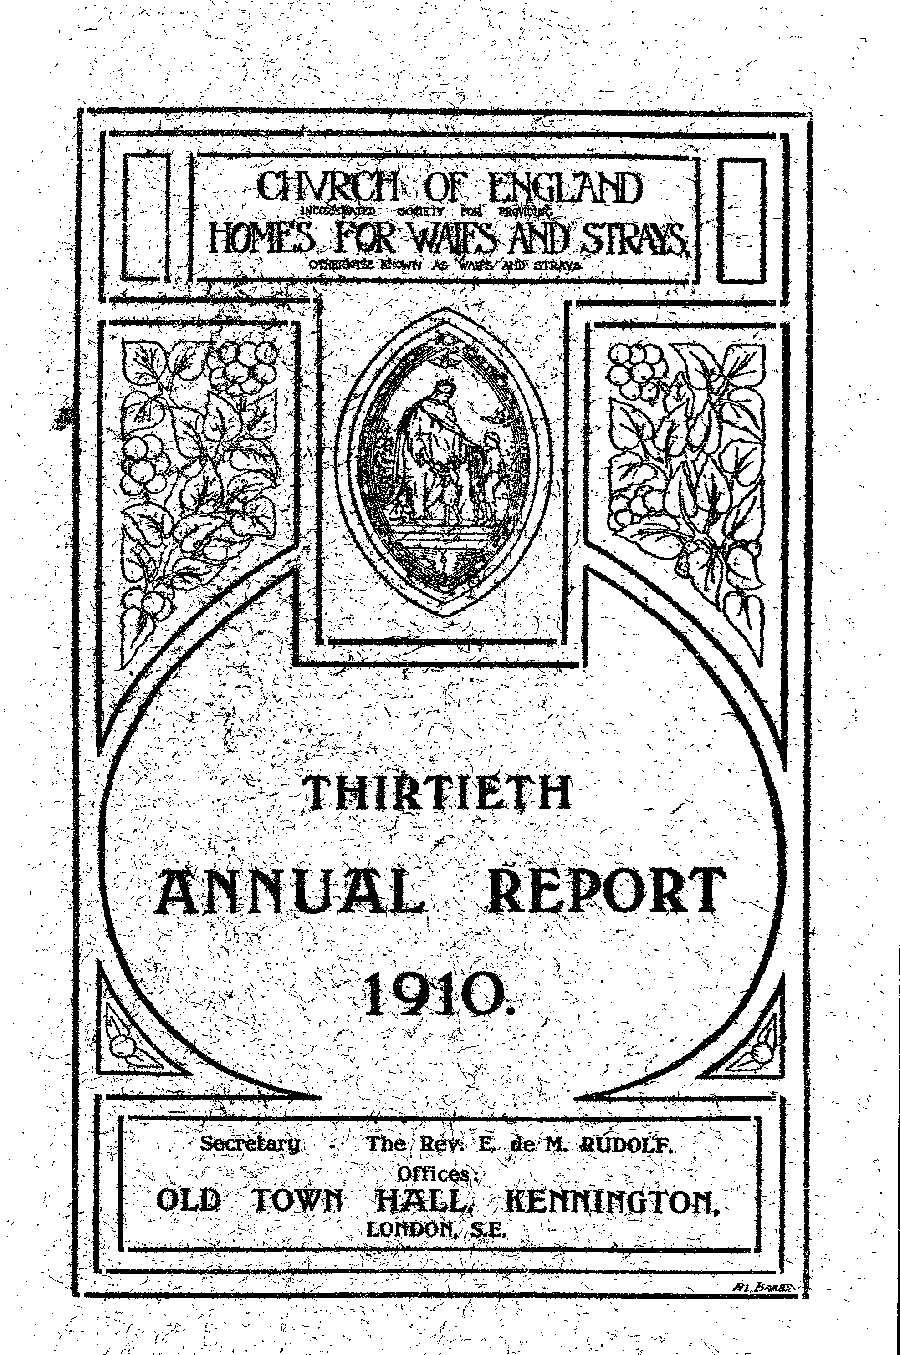 Annual Report 1910 - page 1